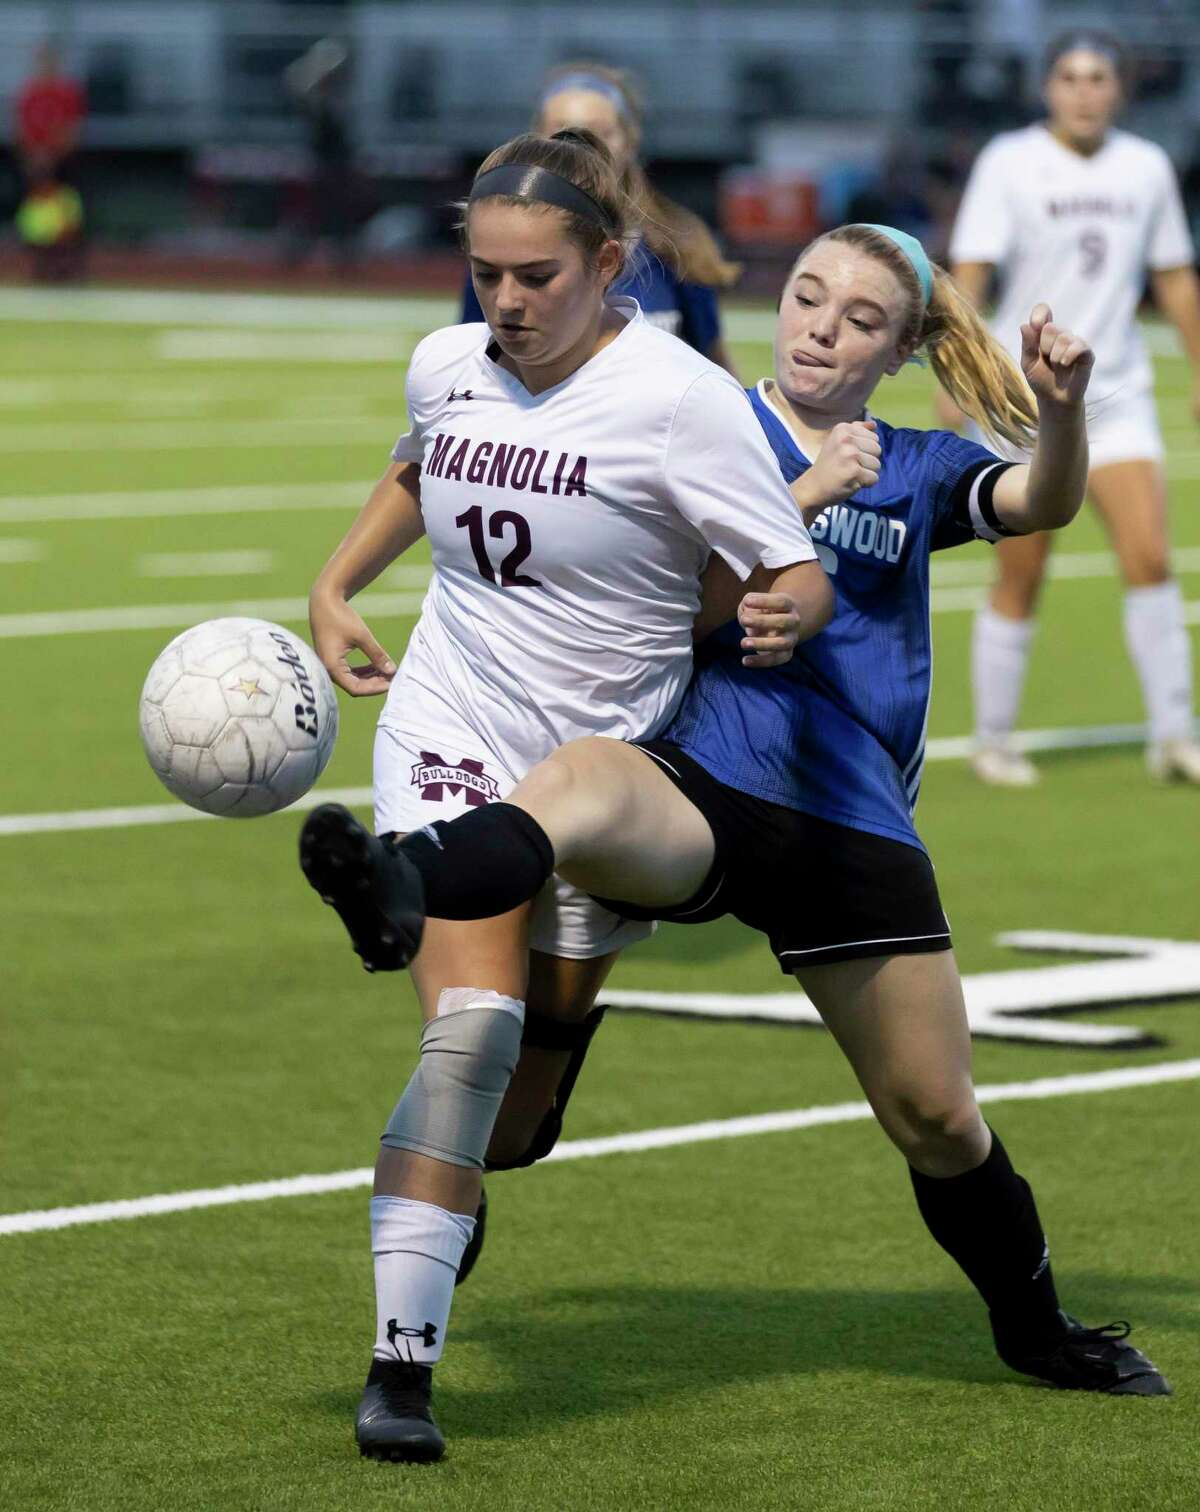 Friendswood Victoria Davis (16) kicks the ball out of control of Magnolia midfielder Elizabeth Ketzner (12) during the first half of the Region III-5A championship at Falcon Stadium, Friday, April 9, 2021, in Huffman.